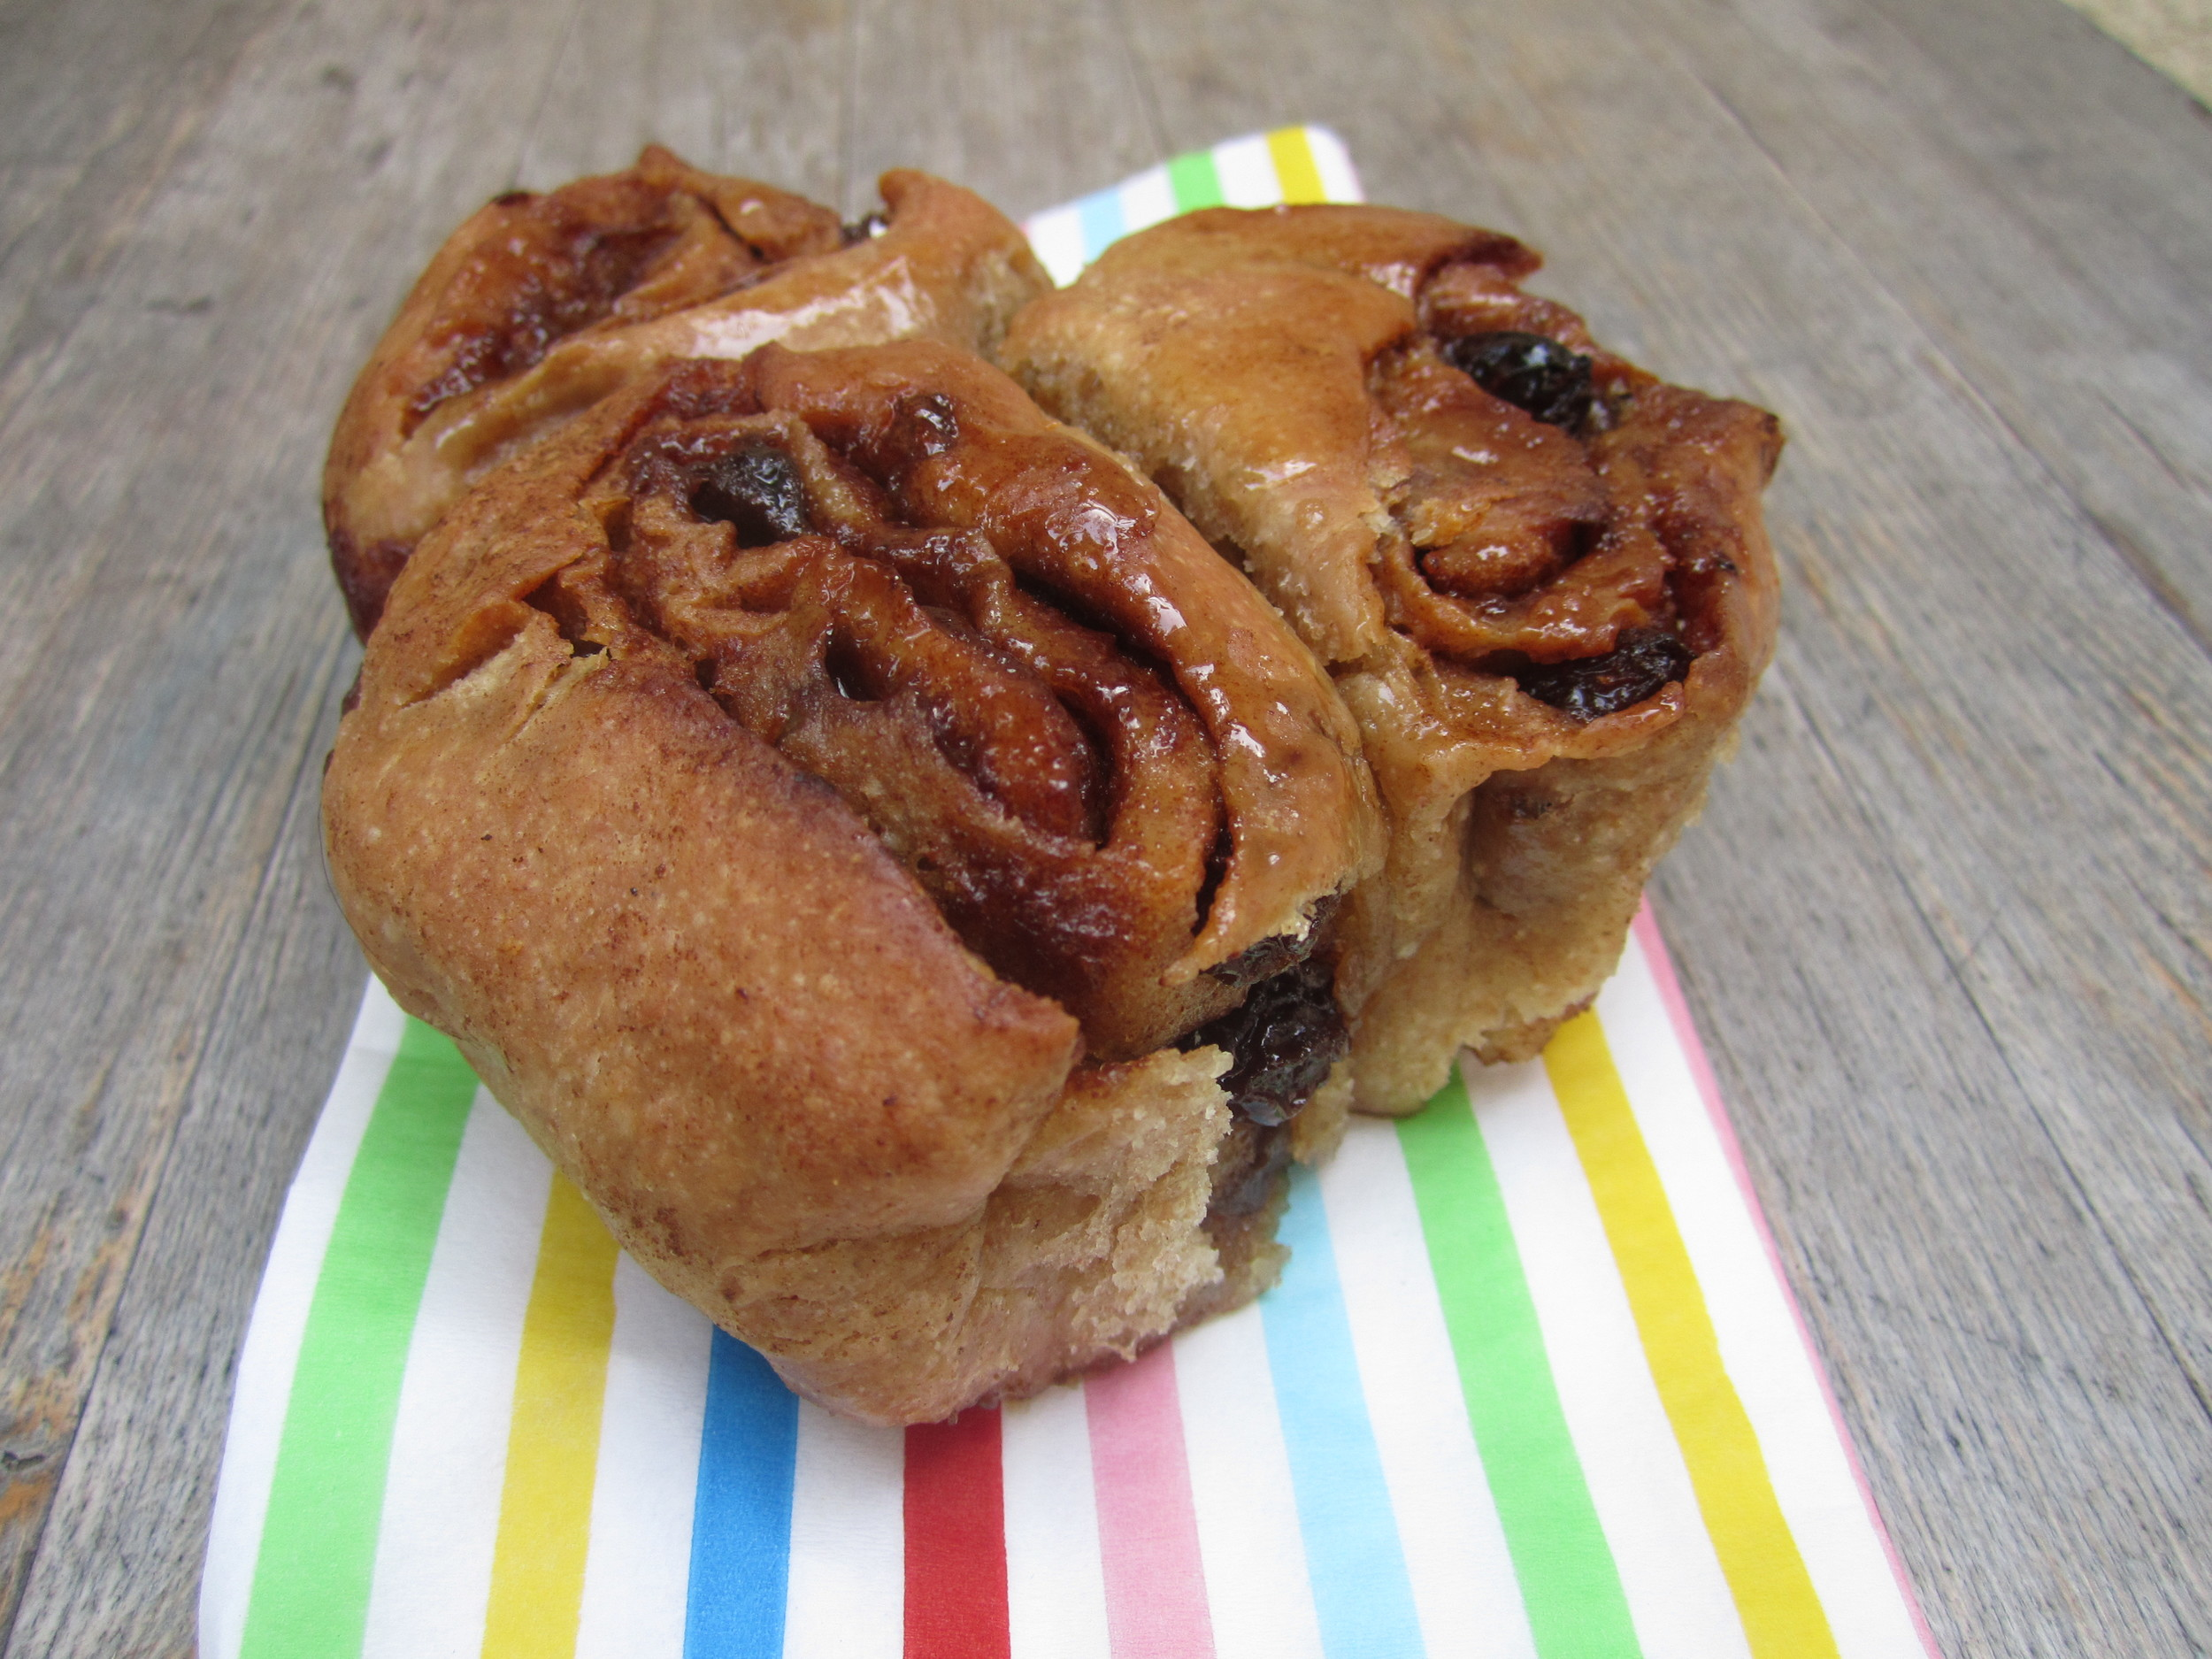 Cinnamon whirl, snail bread, call it what you will...